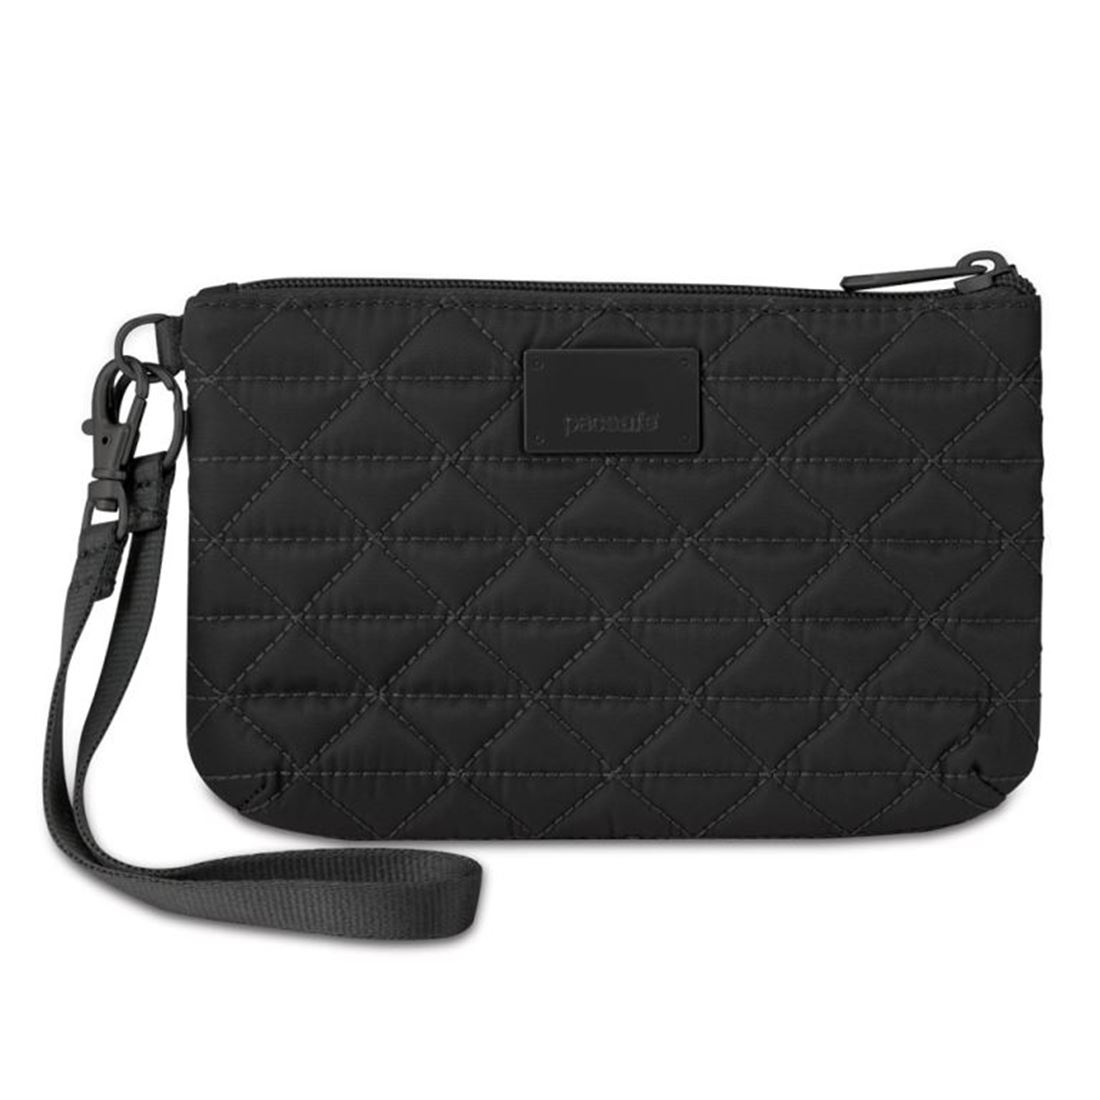 Picture of Pacsafe RFIDsafe W75 Travel Wallet